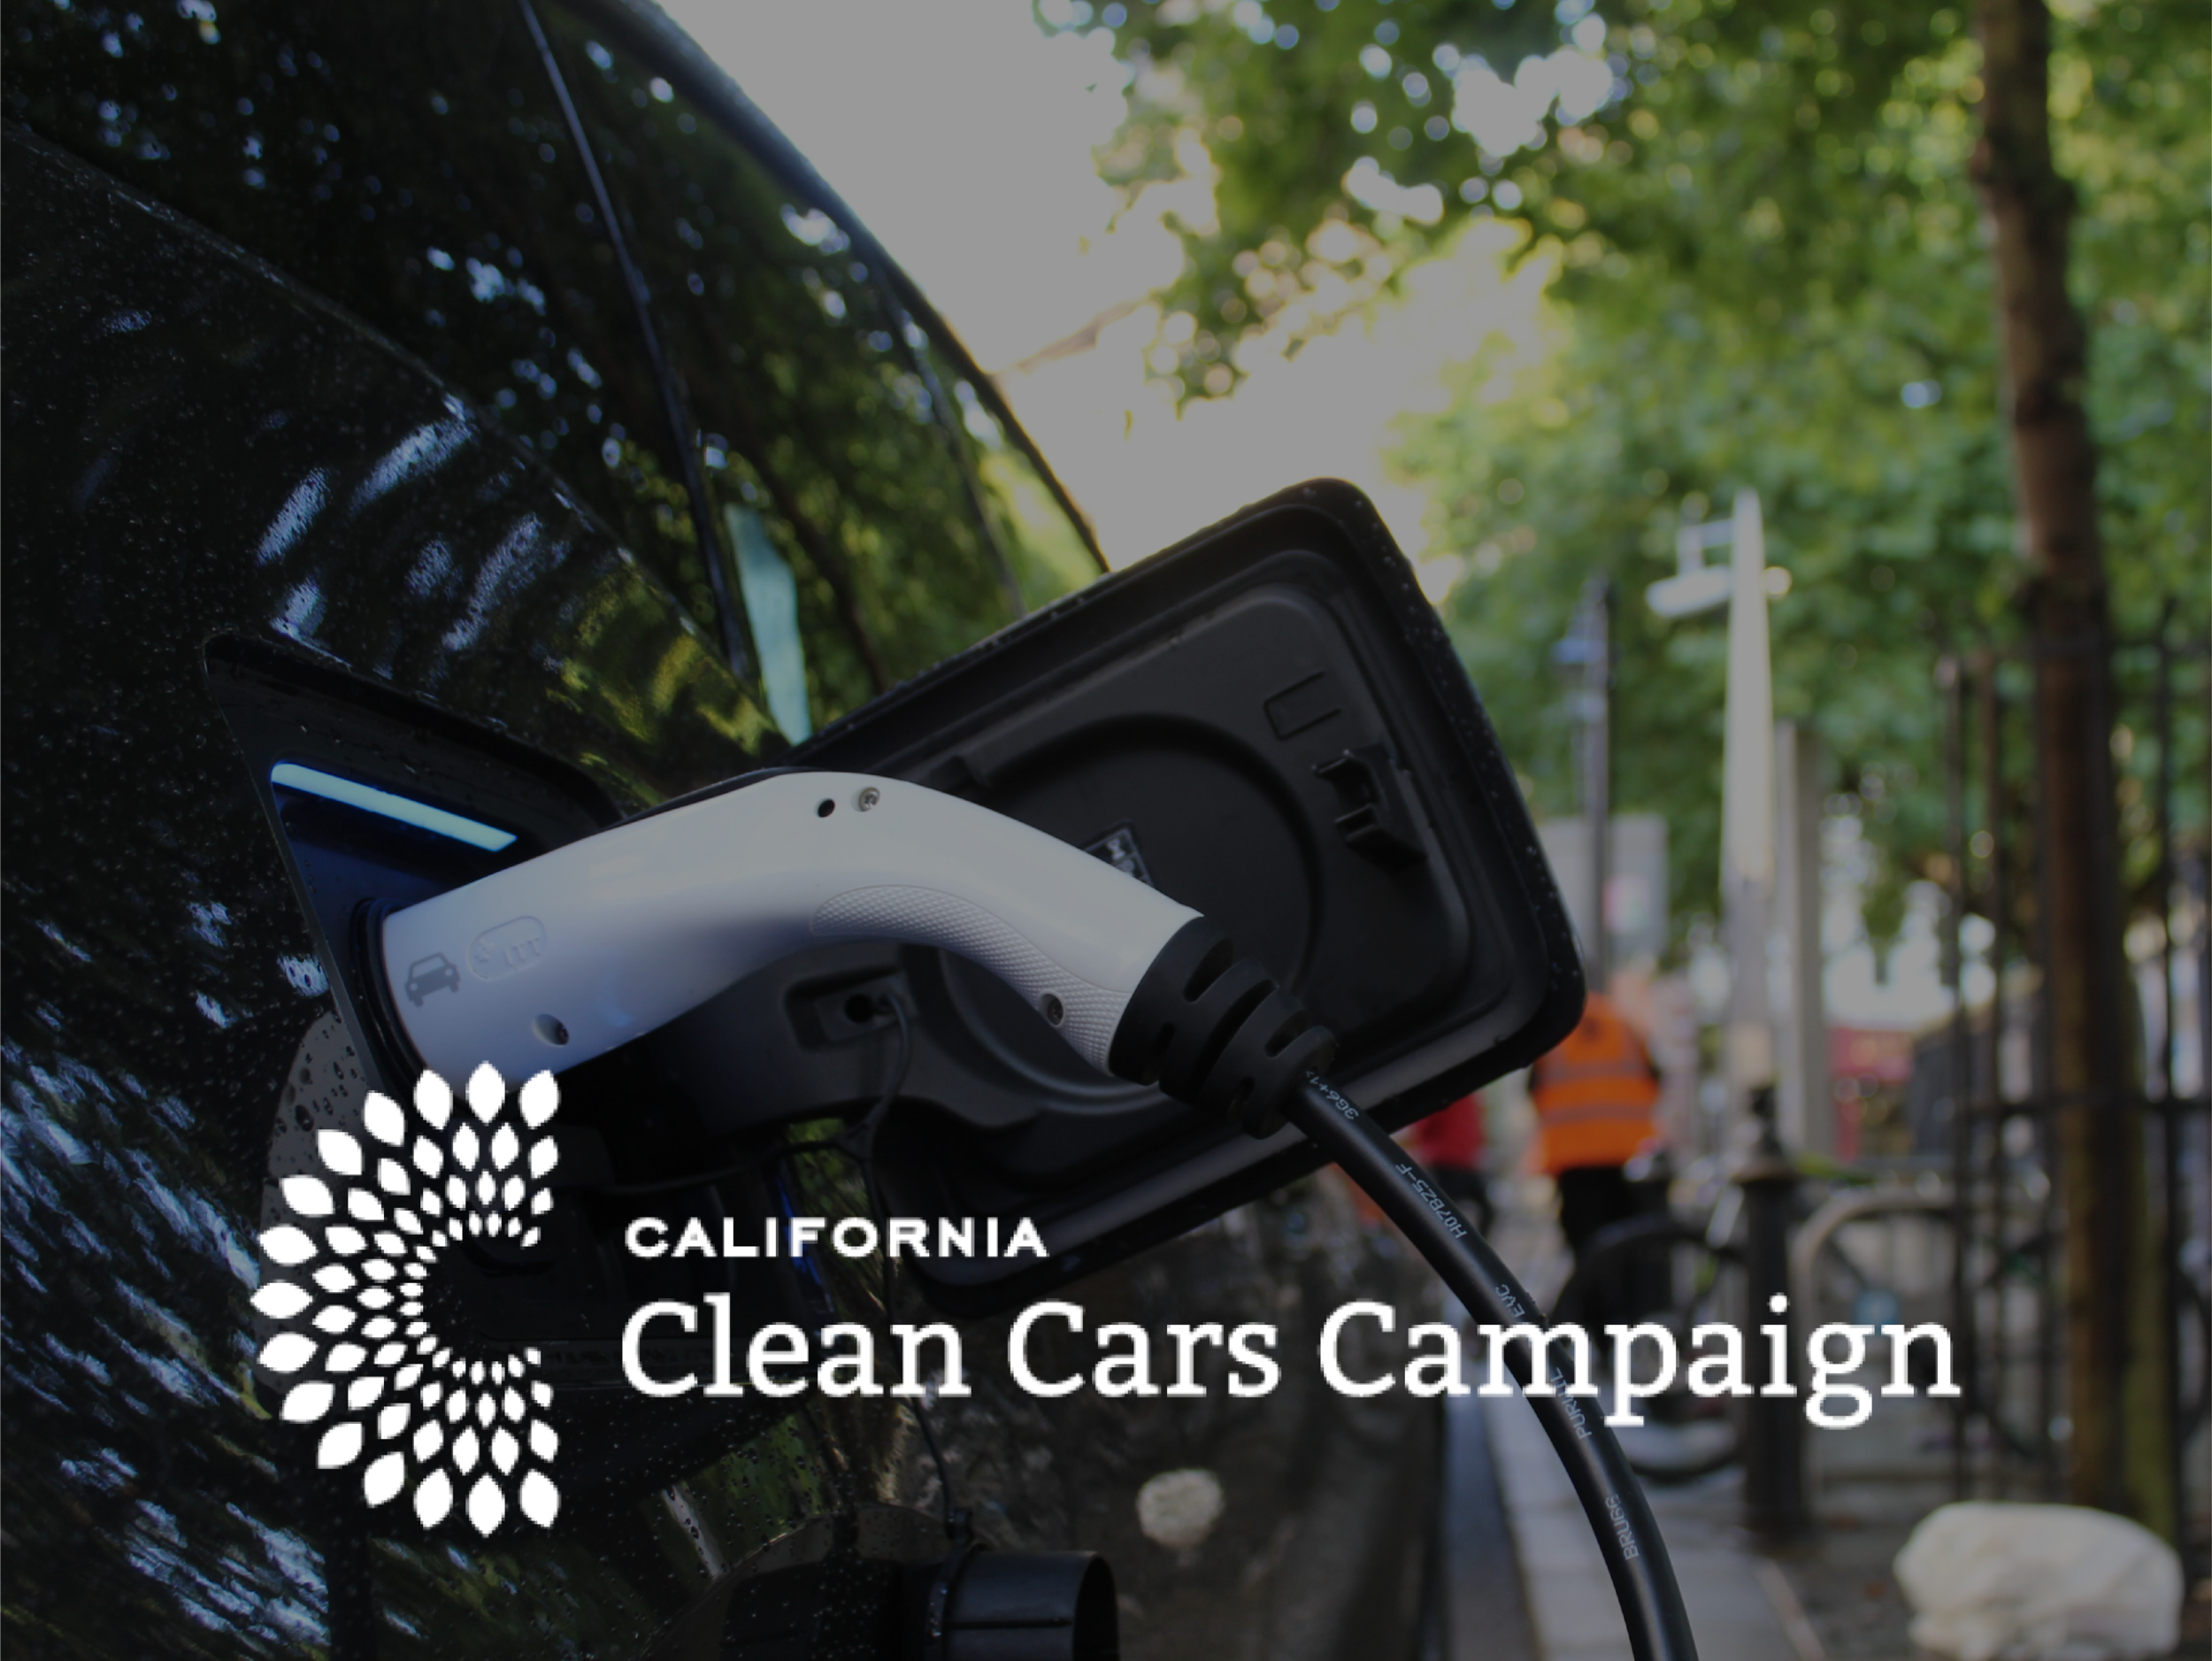 FOUNDATION - Led a multi-state campaign to defend clean car standards from Trump Administration rollbacks